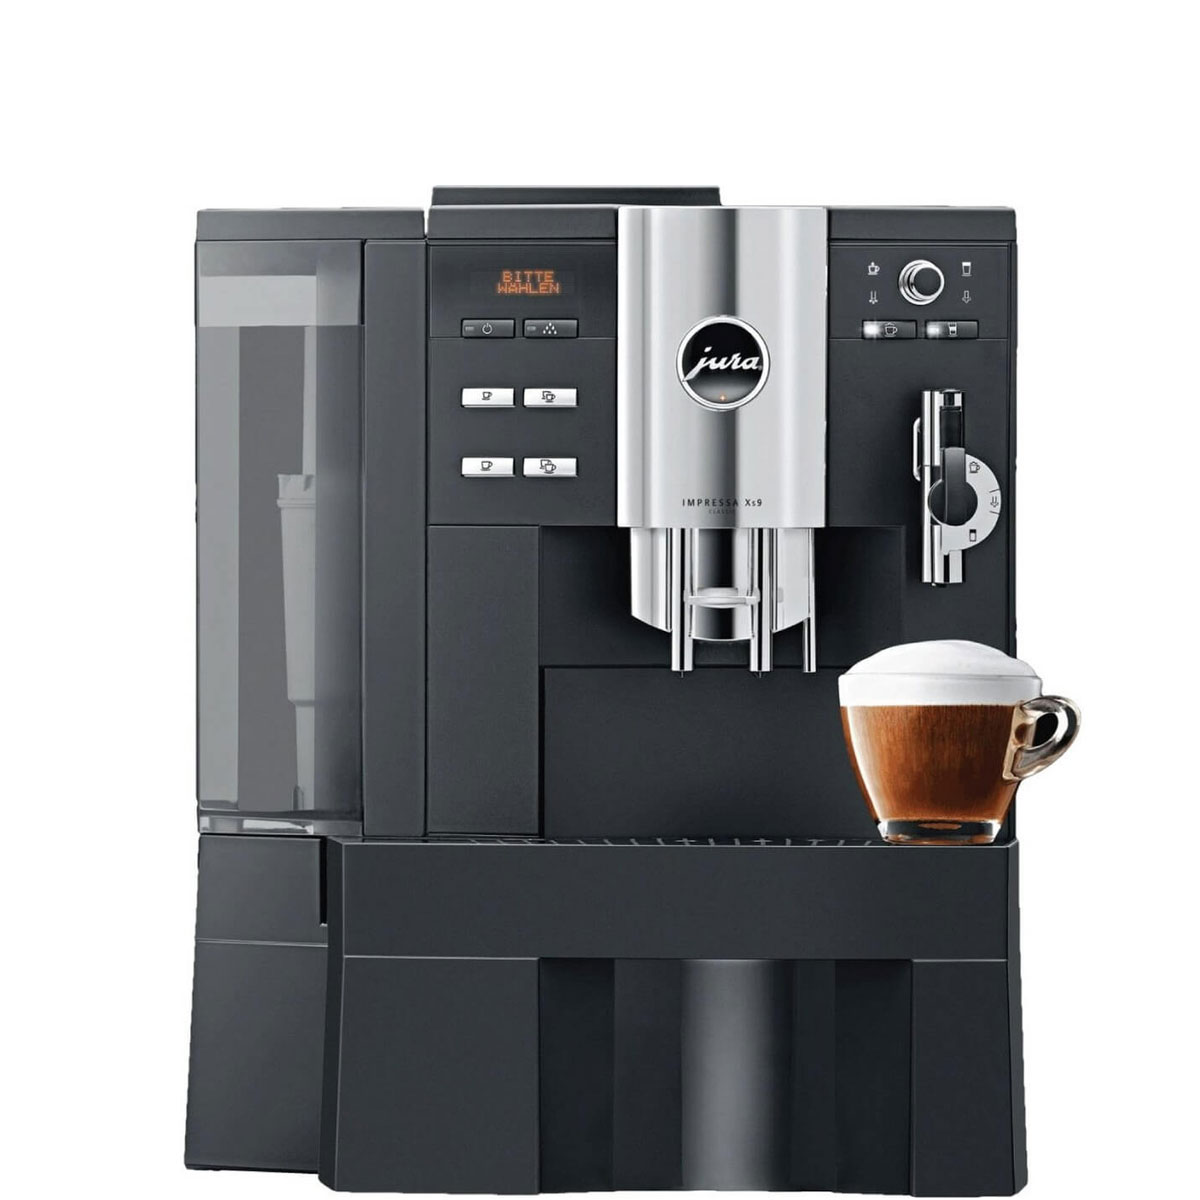 coffee beans coffee machine malaysia supplier. Black Bedroom Furniture Sets. Home Design Ideas